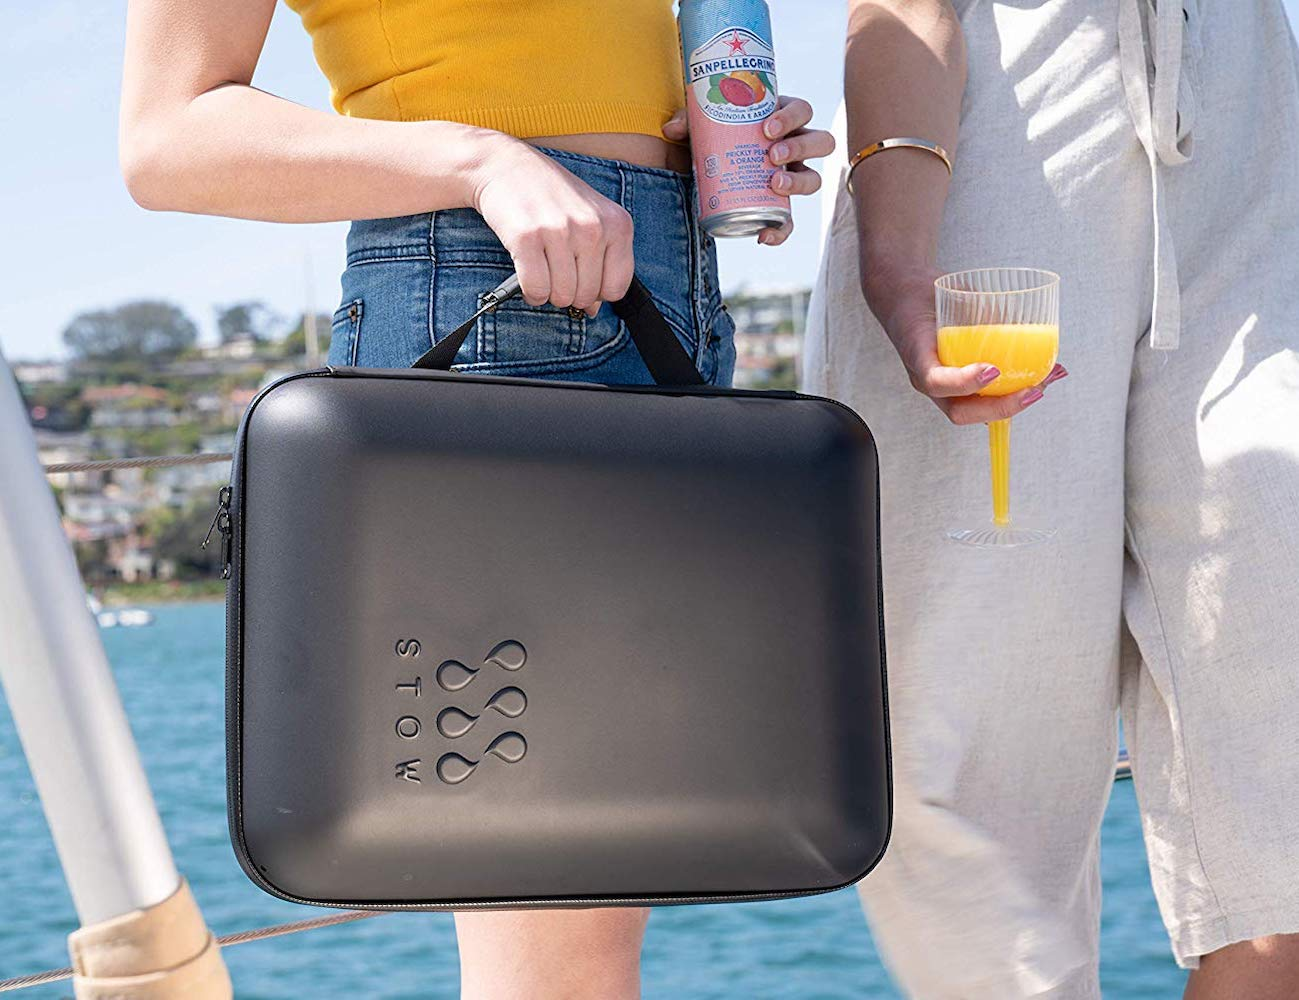 StowCo Portable Drink Cooler keeps your drinks cold for hours